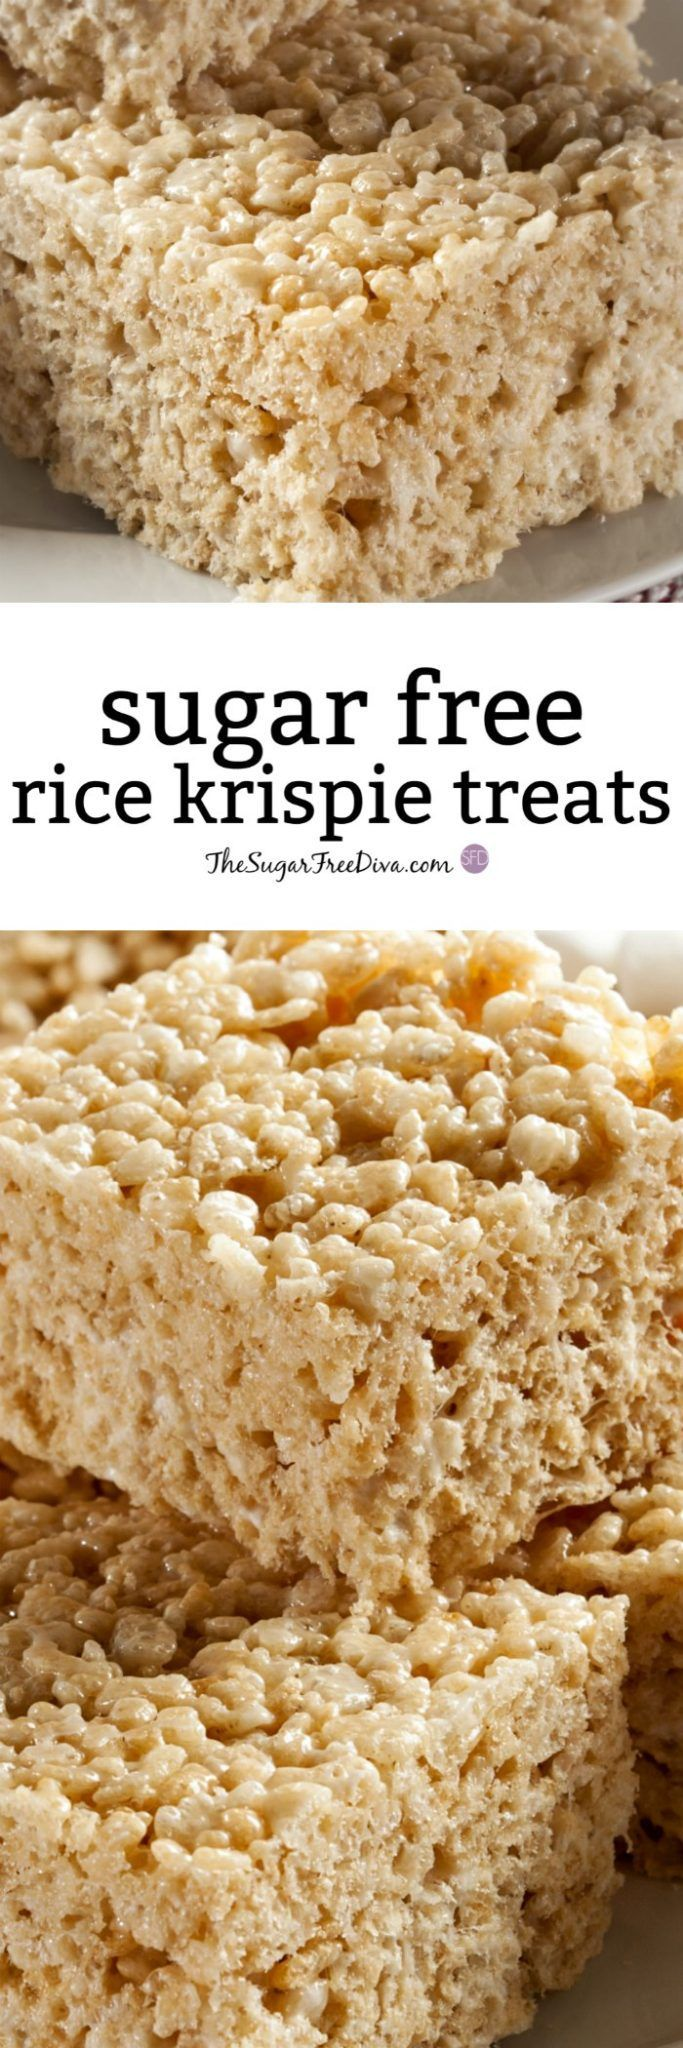 Sugar Free Rice Krispie Treats-This recipe for a copycat version of the famous Rice Krispie Treats or cereal treat can be made with low sugar or sugar free. This is the perfect treat, snack, dessert or fun gift to give to someone else. This is so easy to make too!